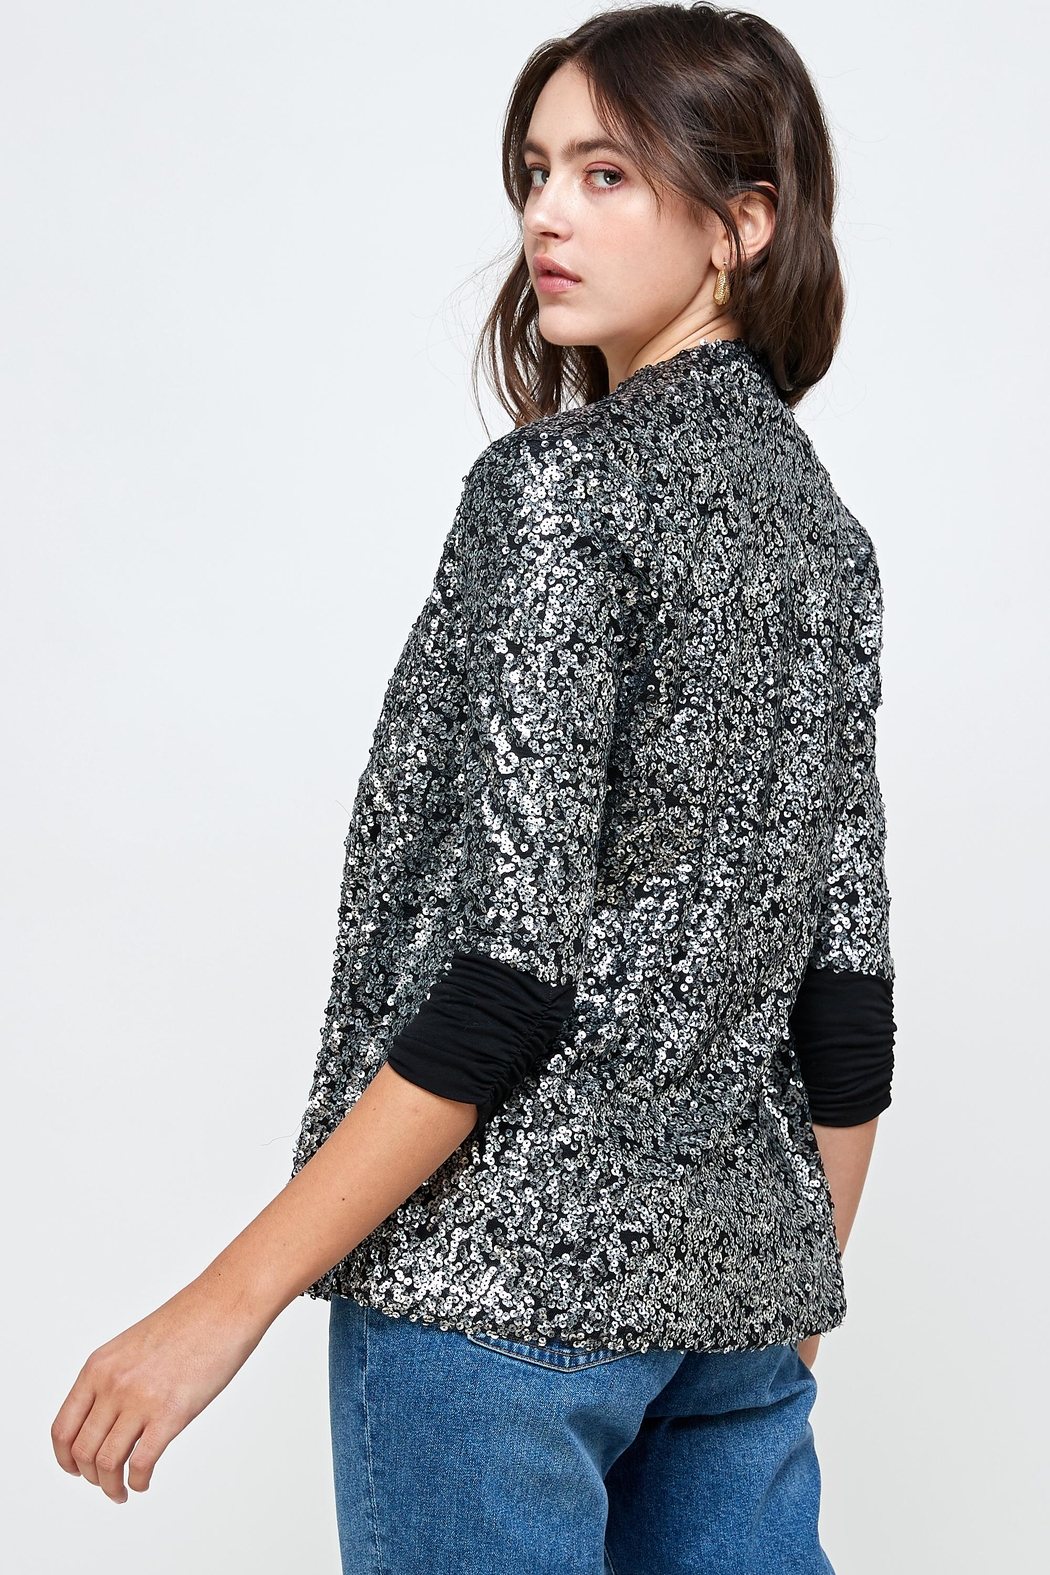 Kaii Sequins Cover Up Party Blazer Top - Back Cropped Image